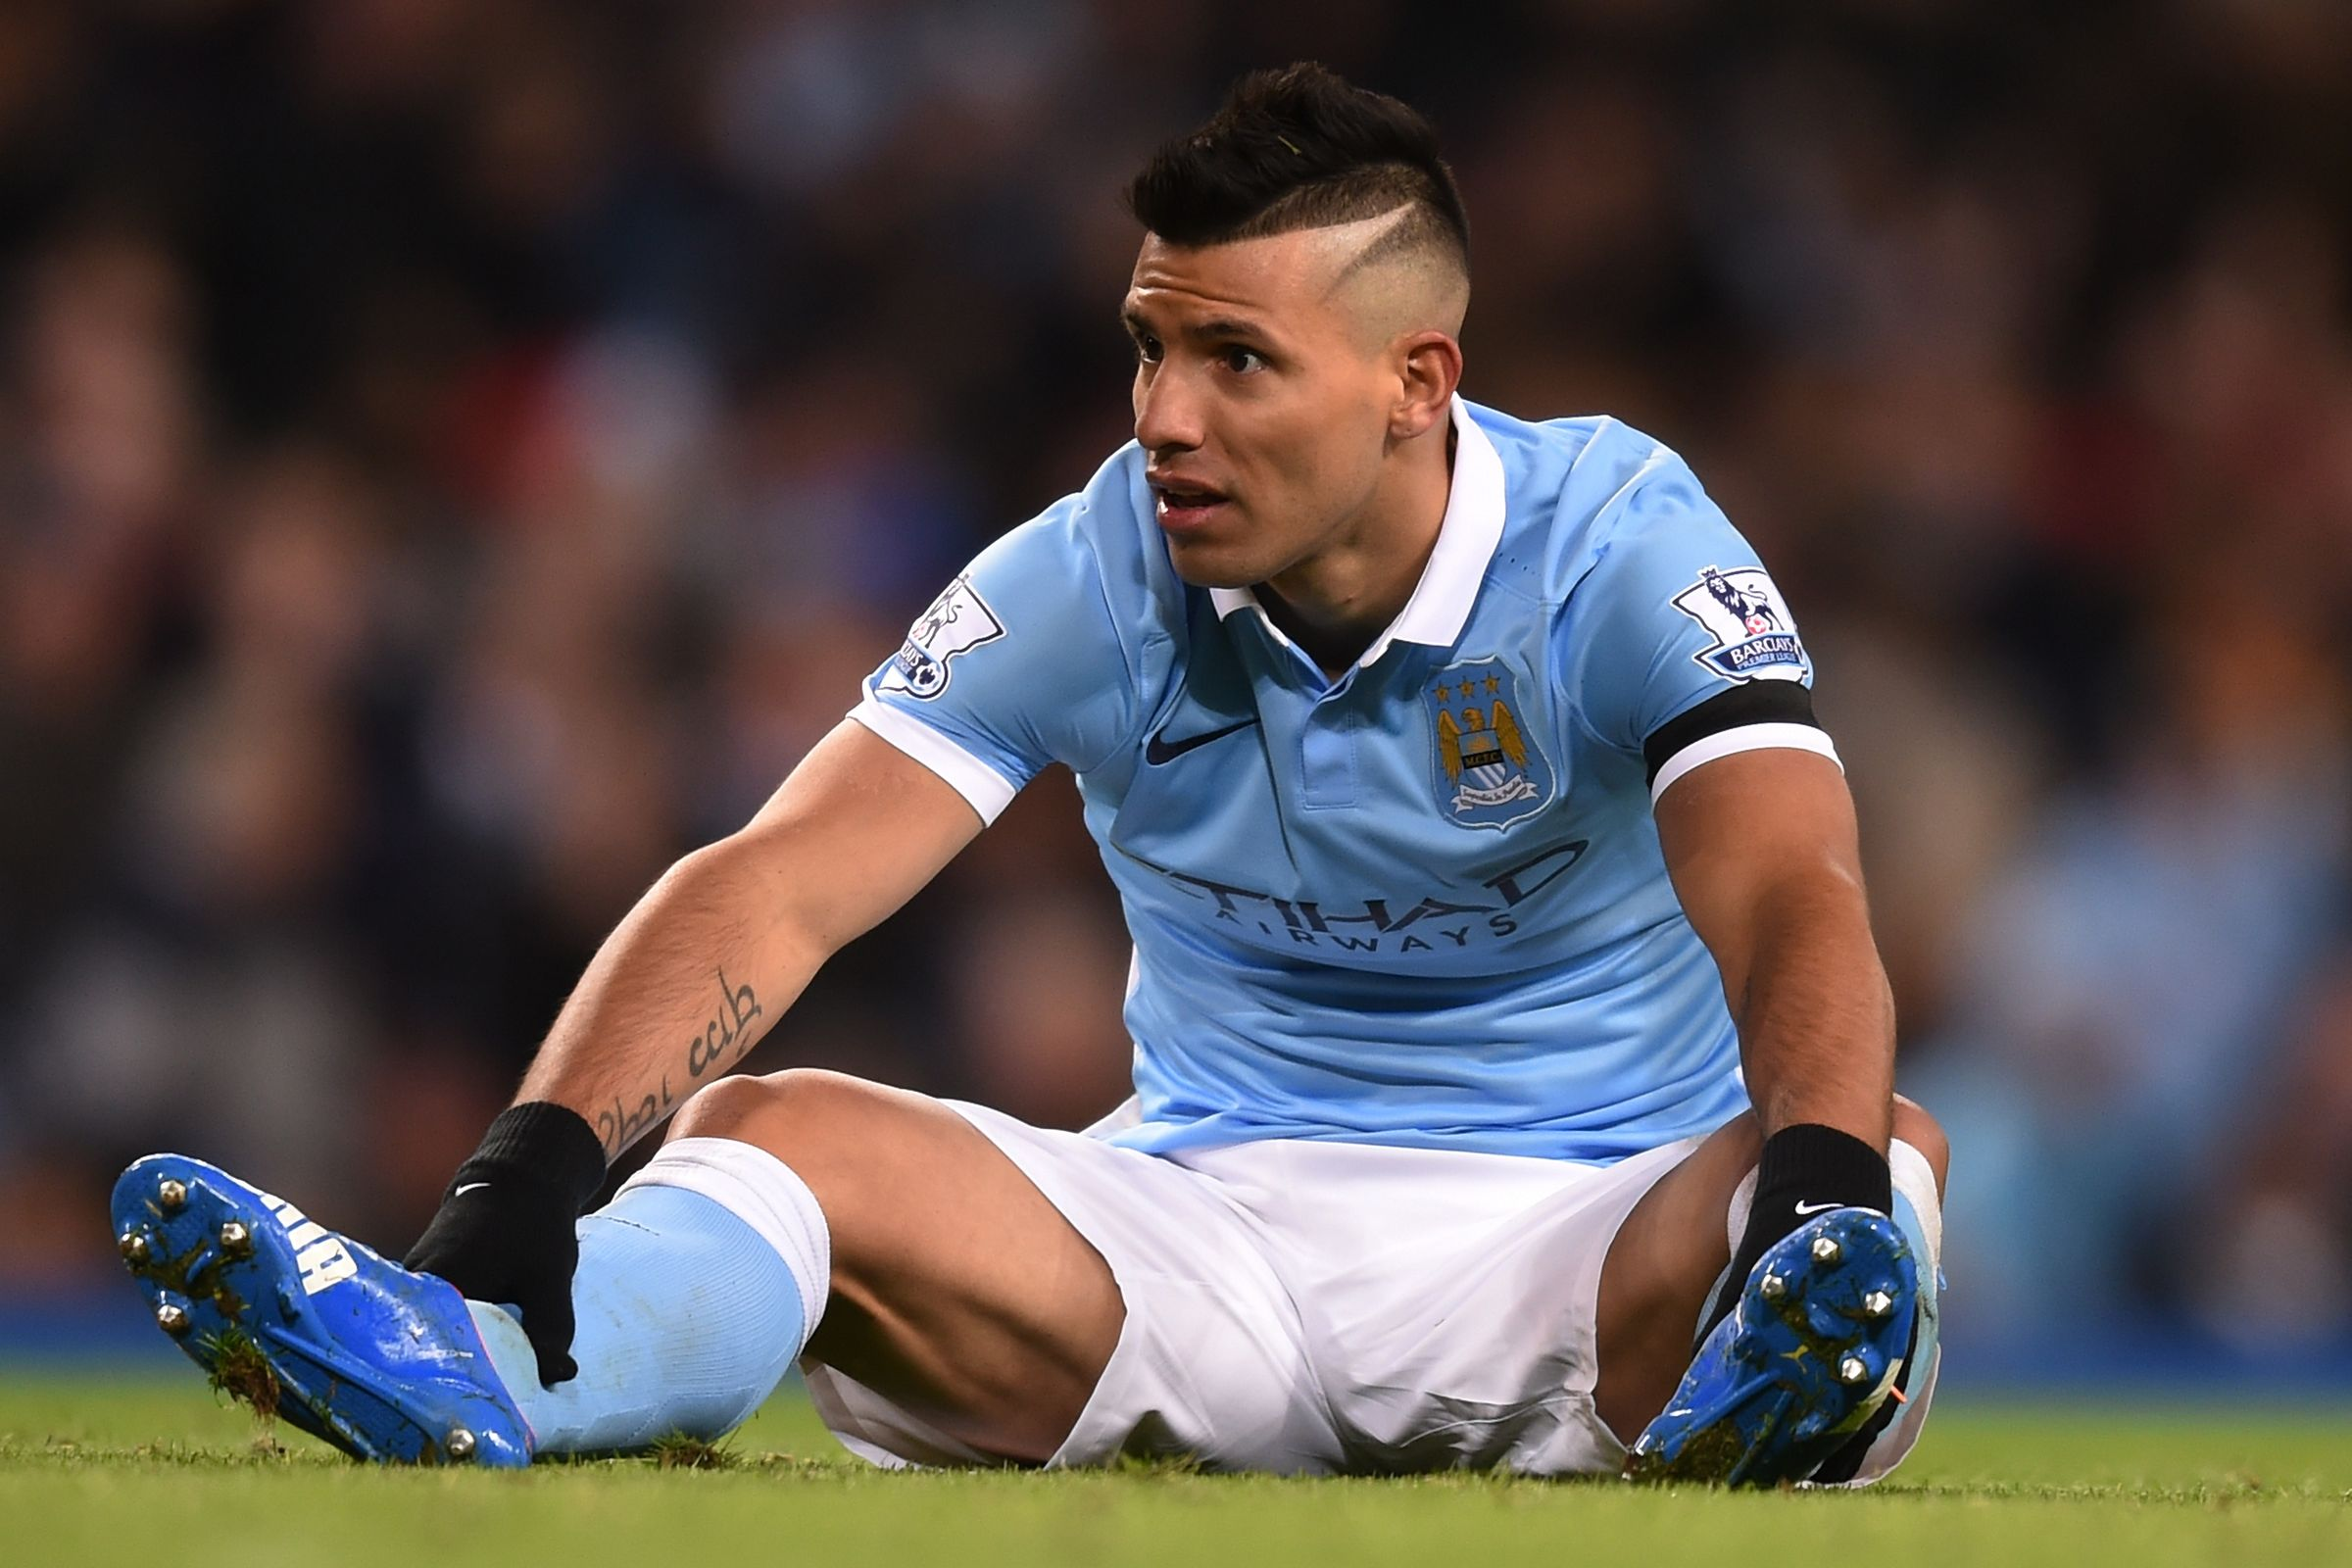 Down and out for now - Sergio misses his fourth game on the bounce, this time against Swansea.